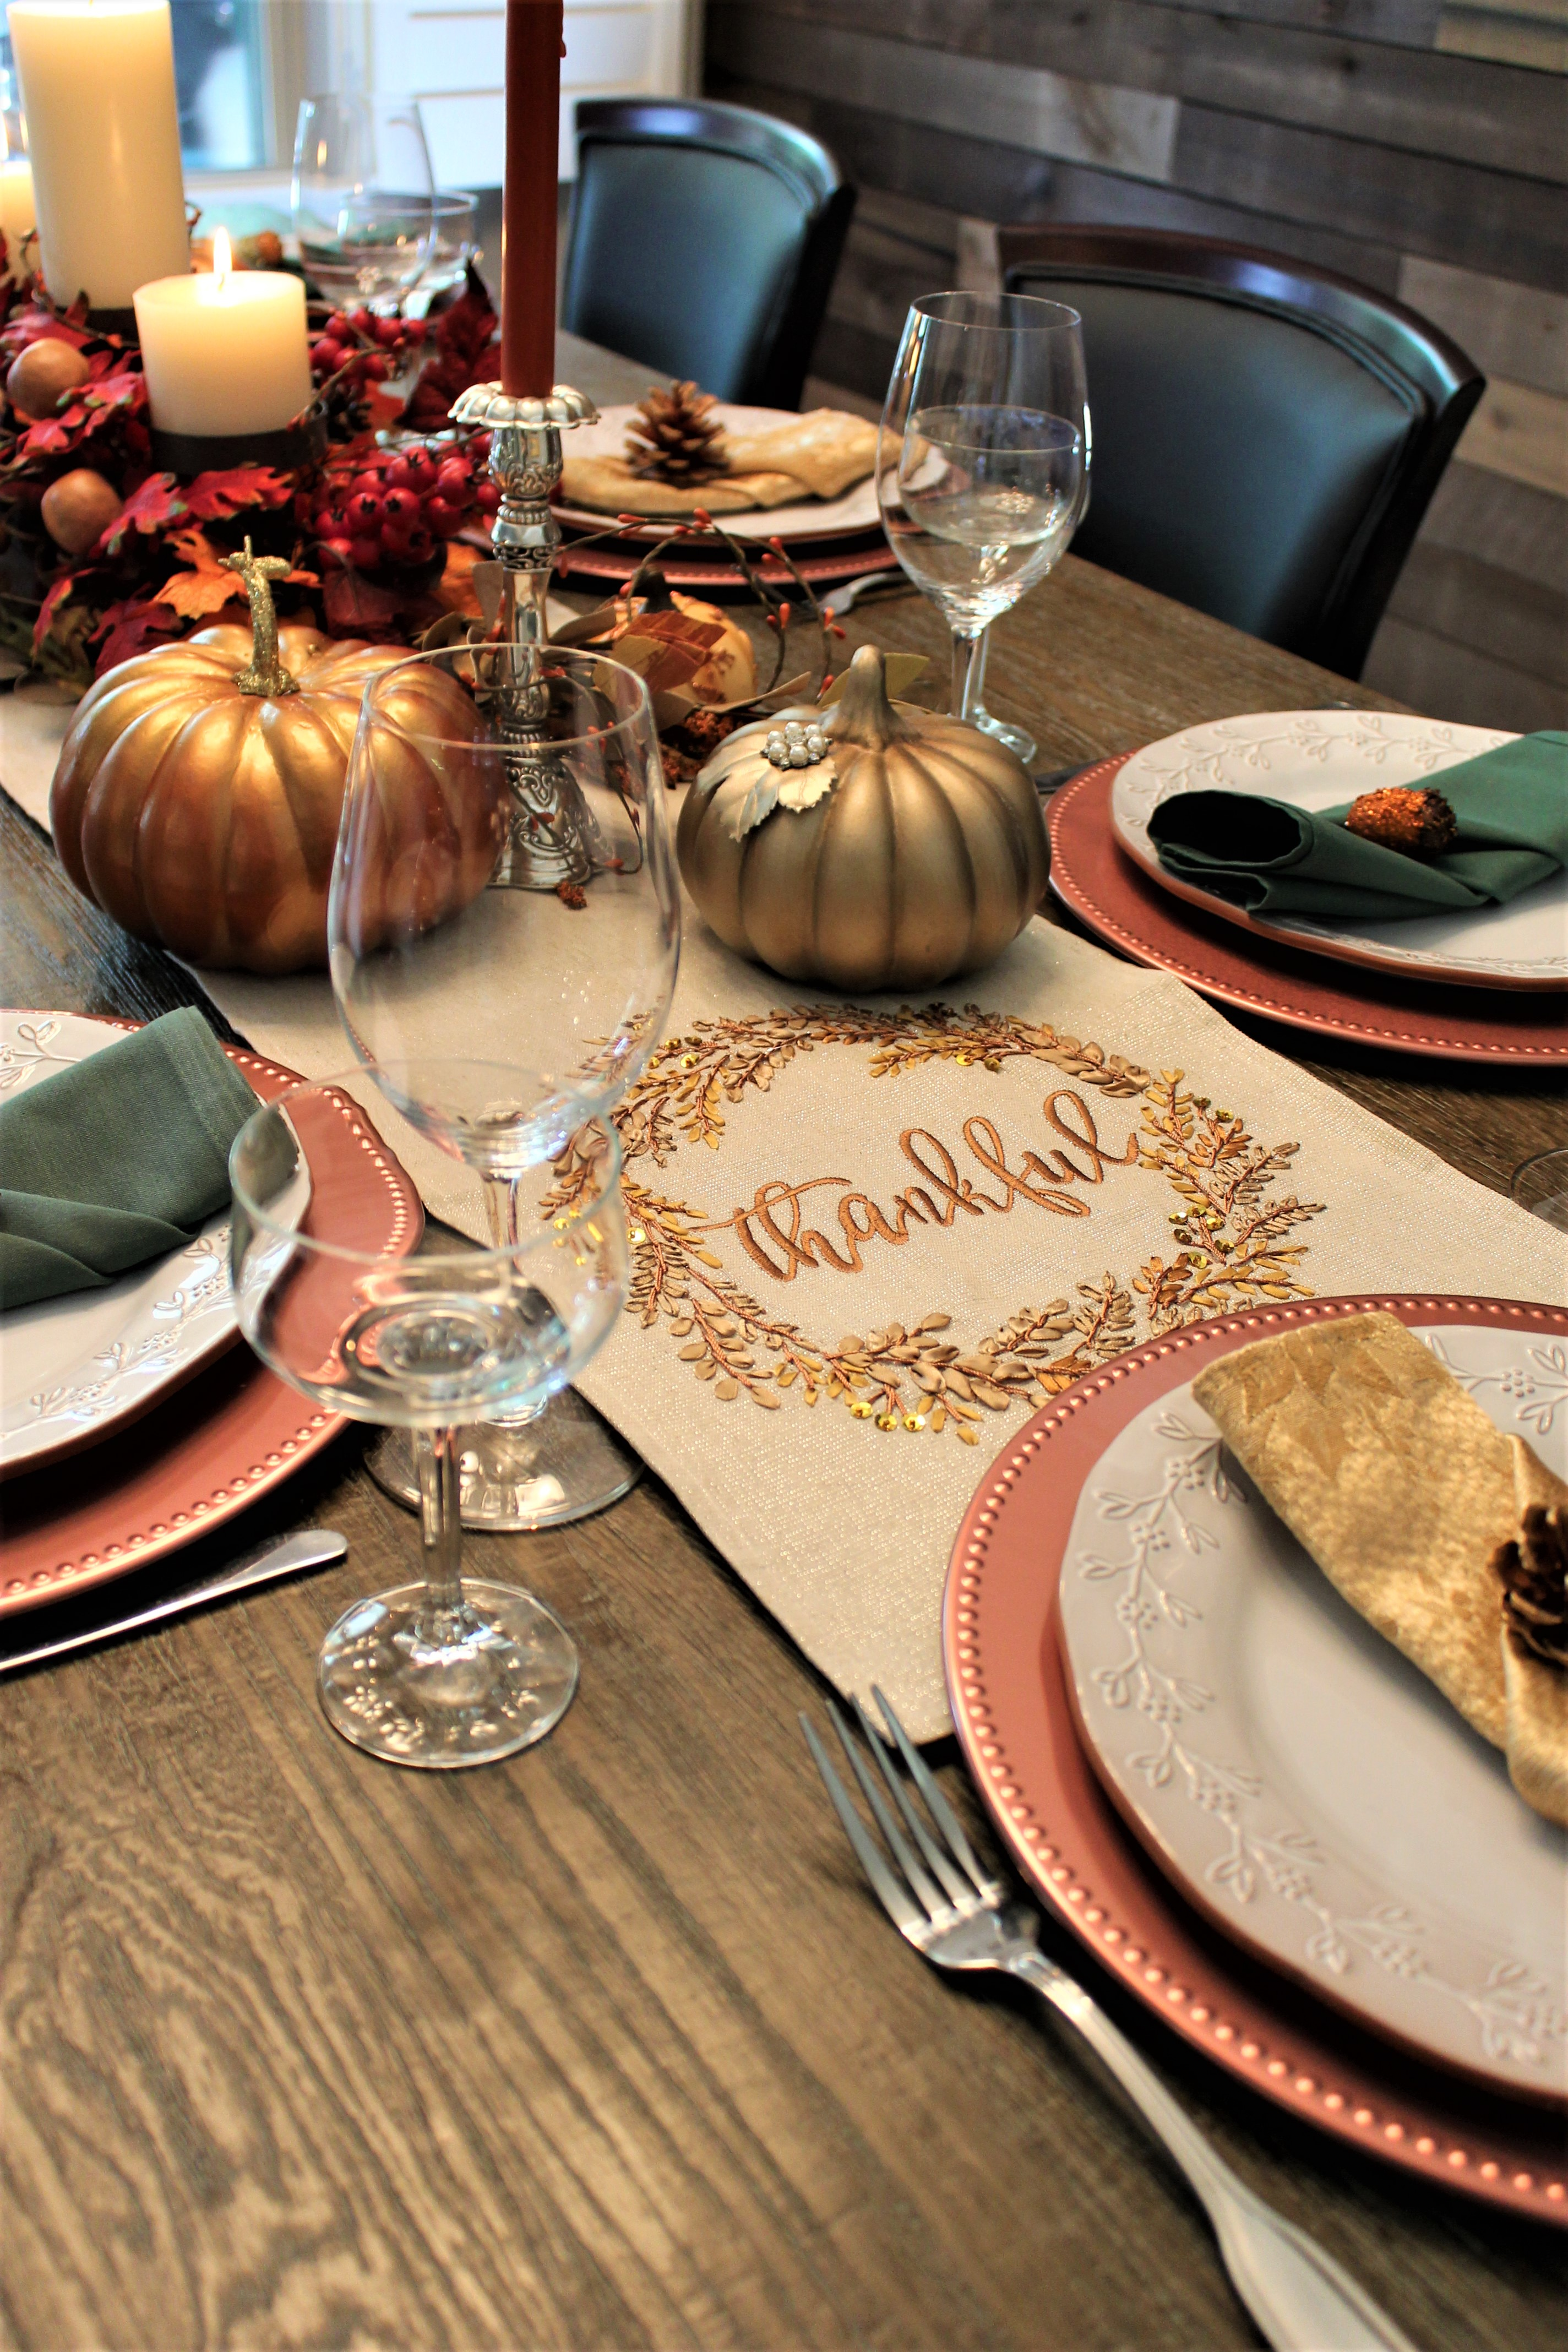 Thanksgiving Celebration Table with place settings, wine glasses, and candles.